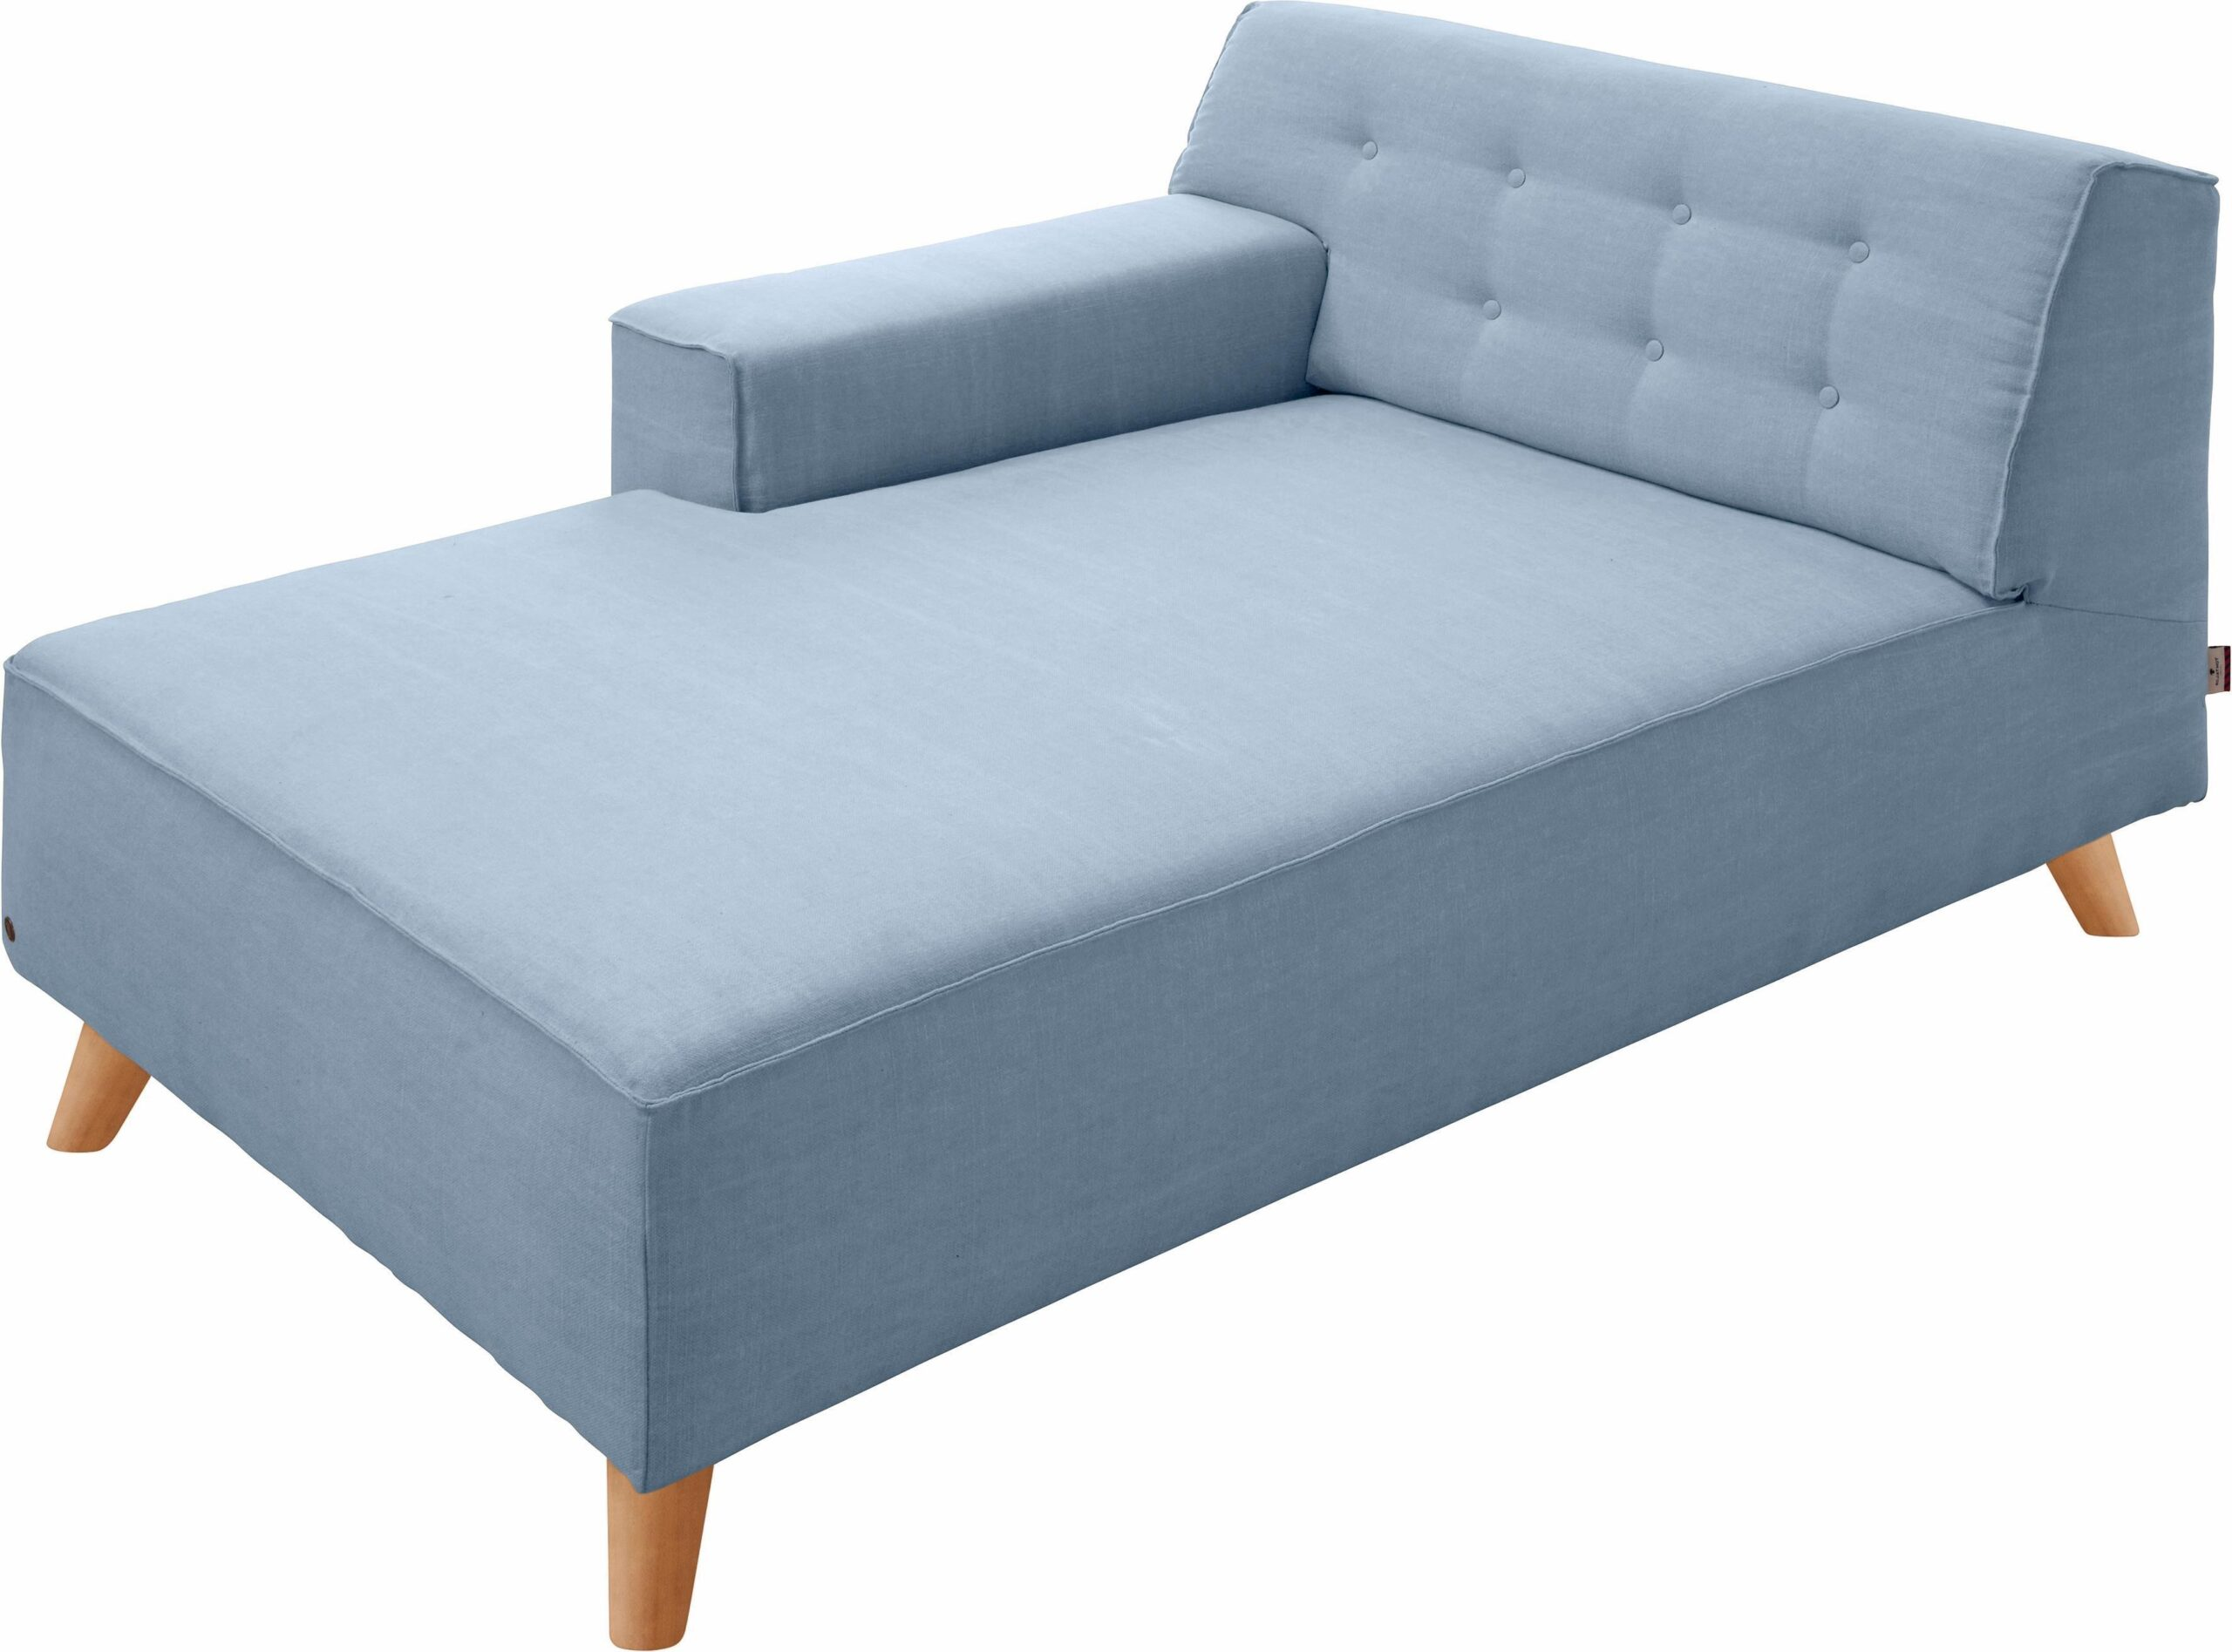 Full Size of Tom Tailor Sofa Nordic Pure Heaven Xl Big S Style Chic Otto Colors Elements Cube West Coast Couch Casual Chaiselongue Online Bestellen Quellede Altes Langes Sofa Sofa Tom Tailor